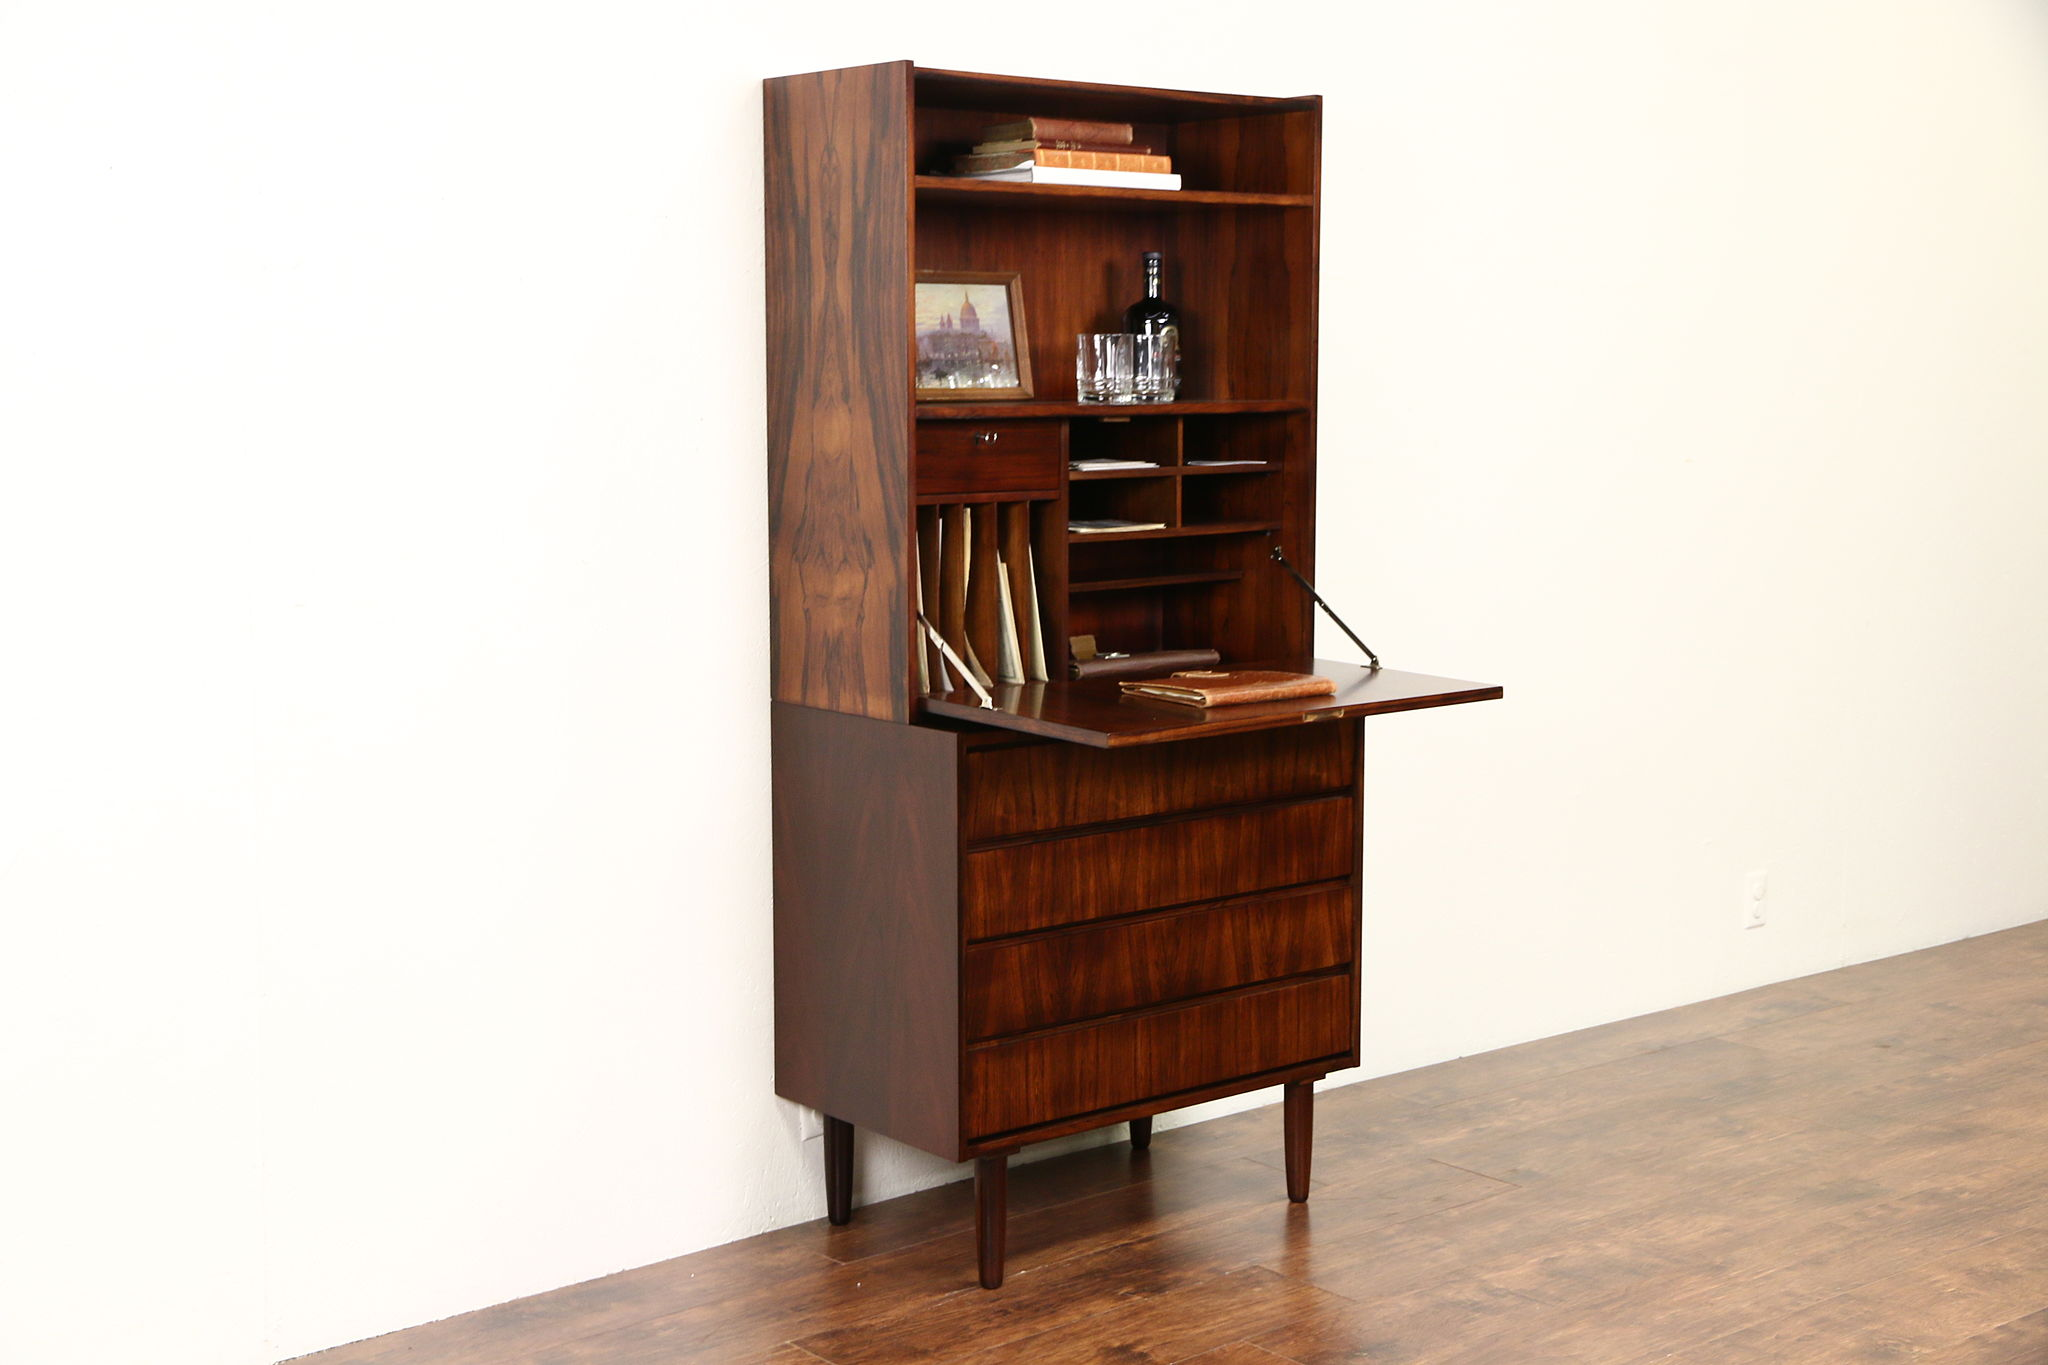 Picture of: Sold Rosewood Midcentury Danish Modern 1960 S Vintage Secretary Desk Bookcase Harp Gallery Antiques Furniture